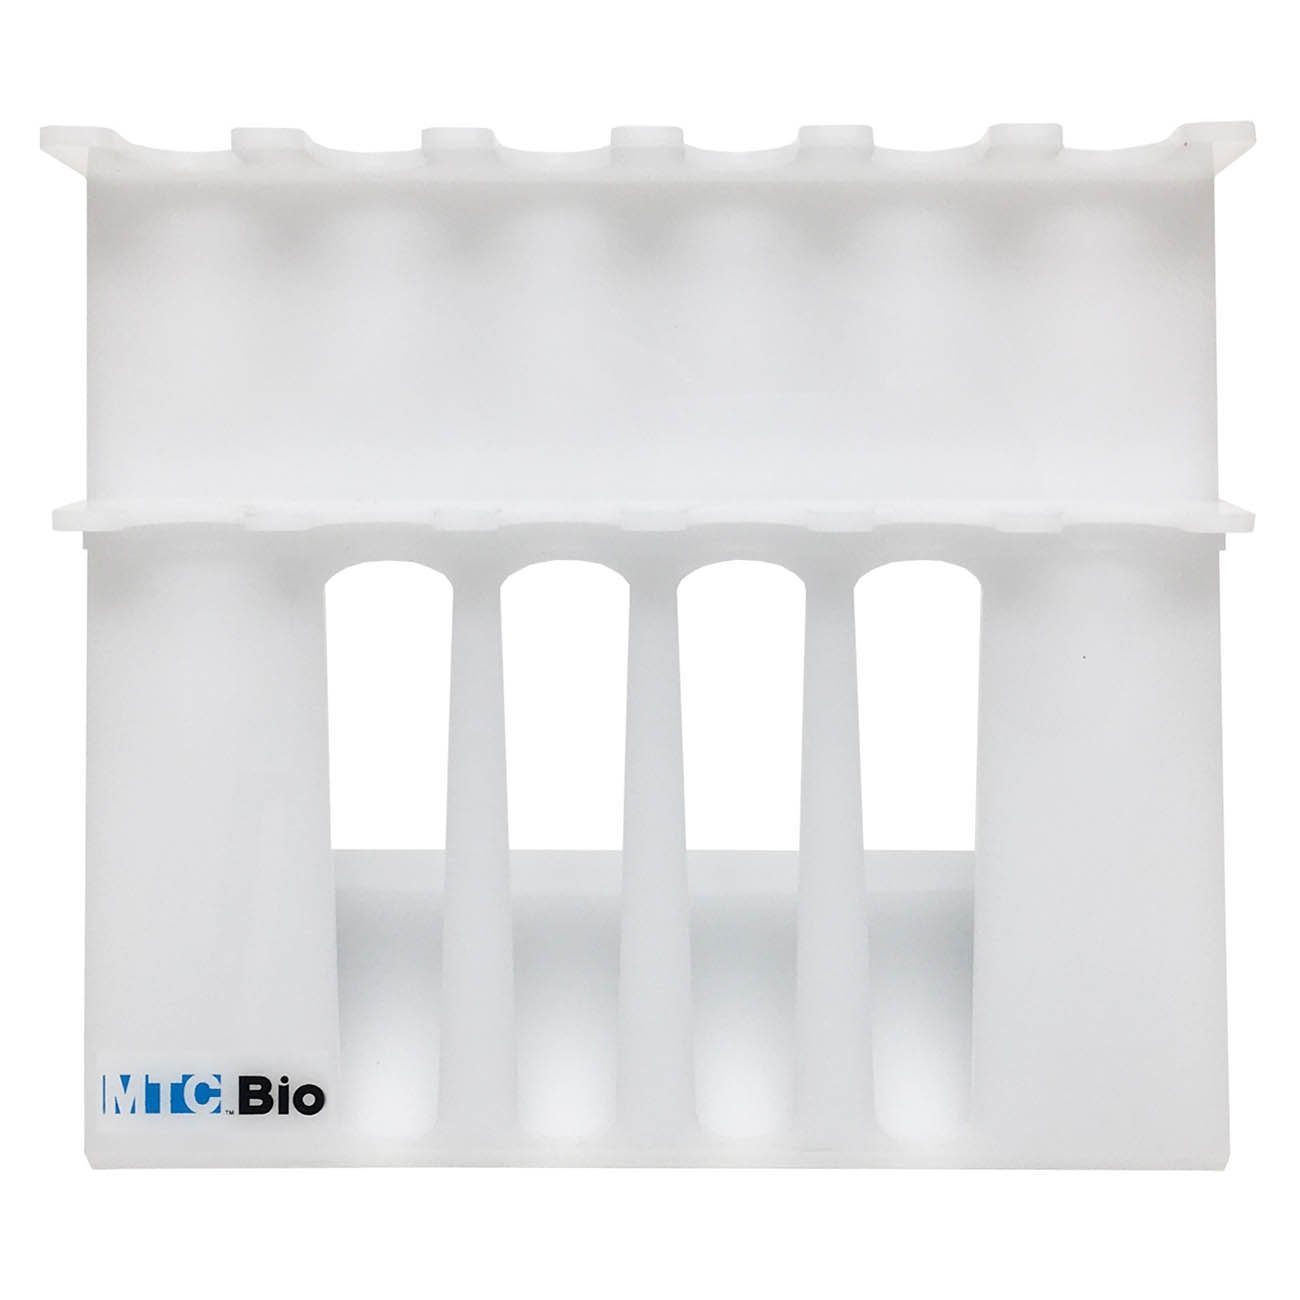 SureStand MultiChannel Capable 6-Place Acrylic Pipette Rack (Accepts 4 Multi-Channels)